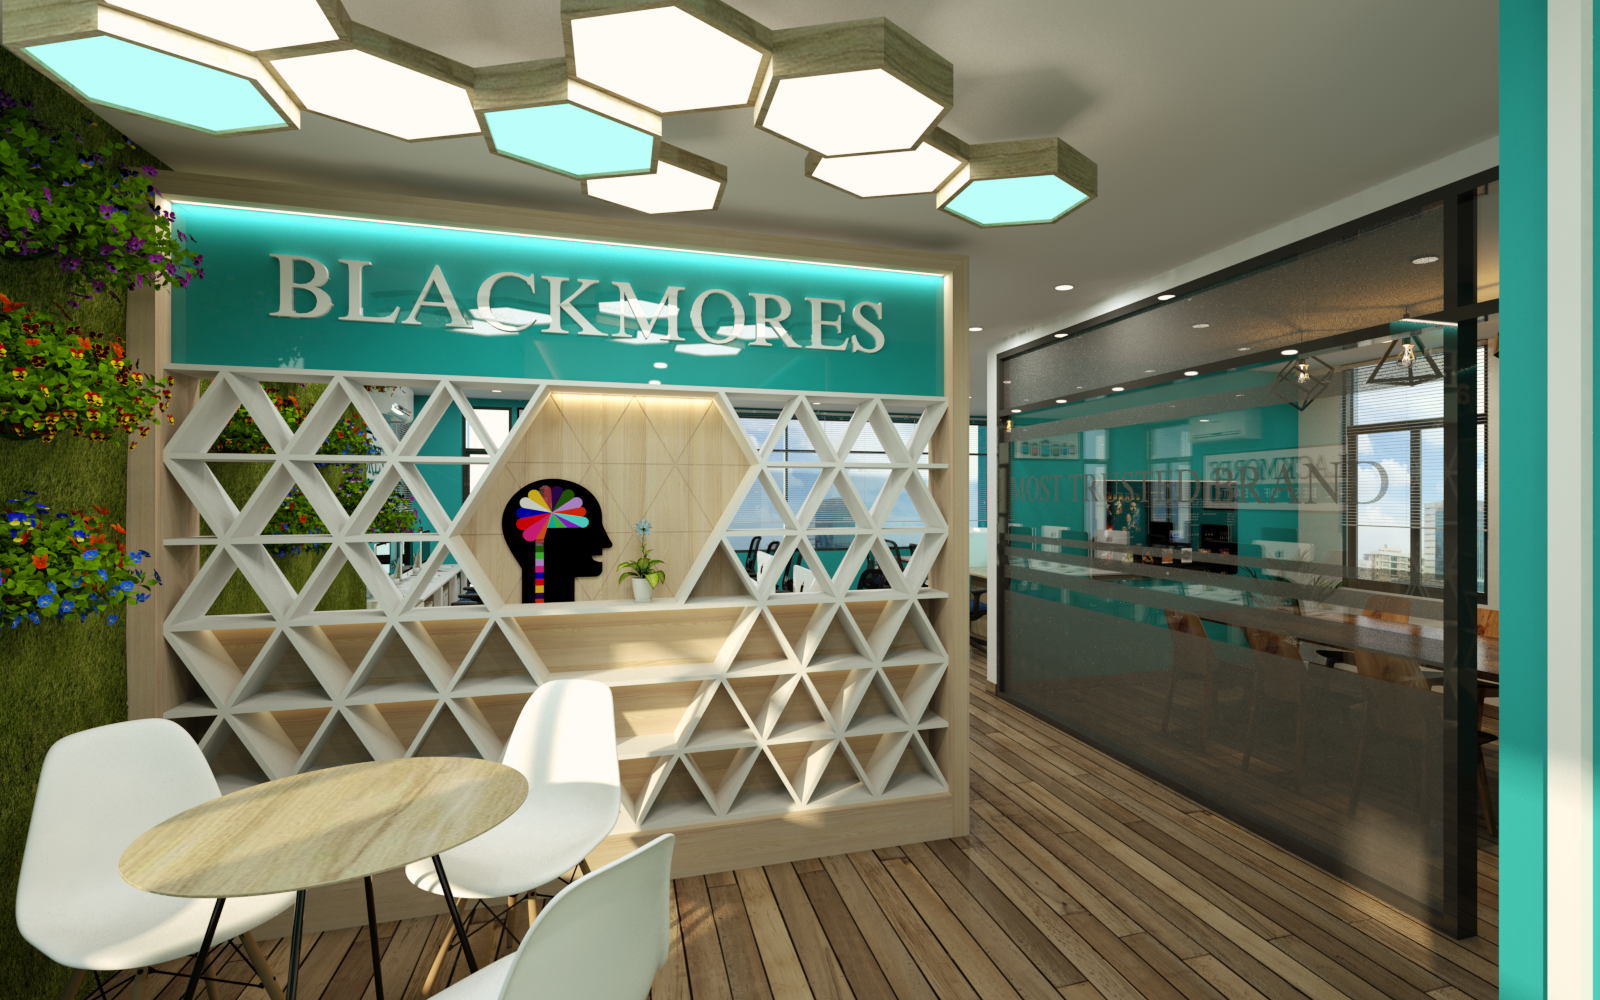 Blackmores office | F 9, 202 Ly Chinh Thang st, W.9, D.3, HCMC